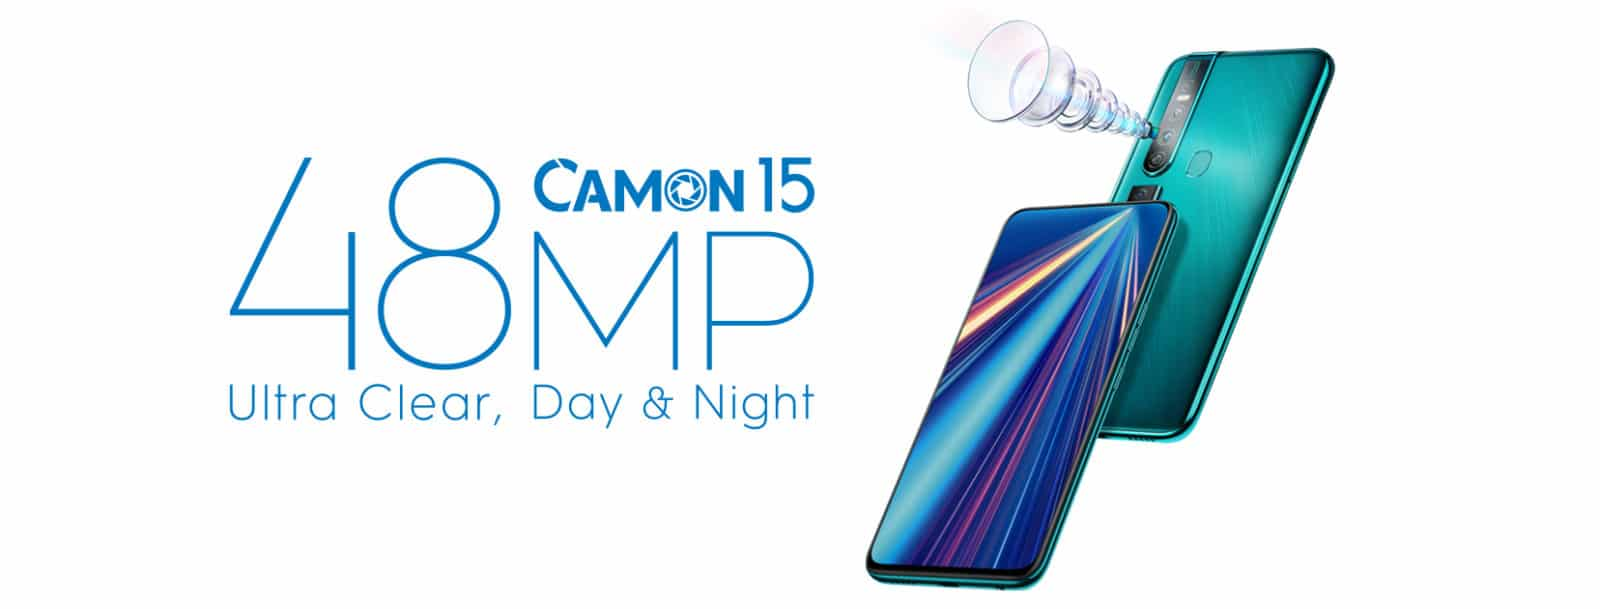 Tecno Reveals its Upcoming Bezel-less Camon 15